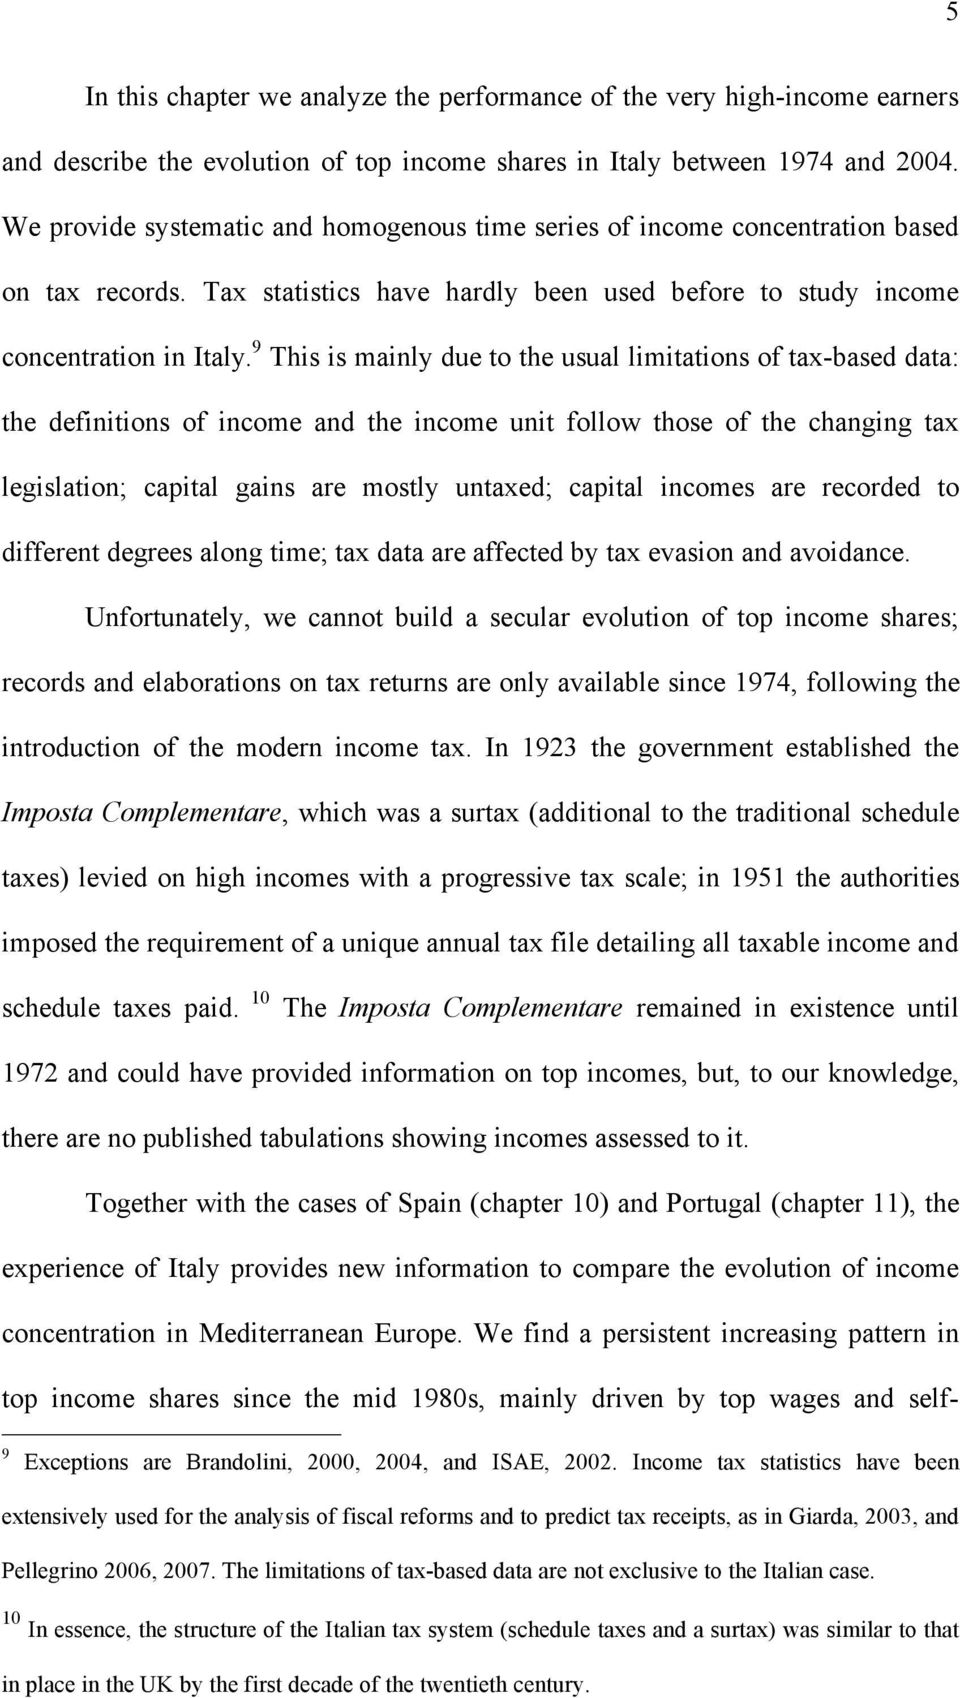 9 This is mainly due to the usual limitations of tax-based data: the definitions of income and the income unit follow those of the changing tax legislation; capital gains are mostly untaxed; capital